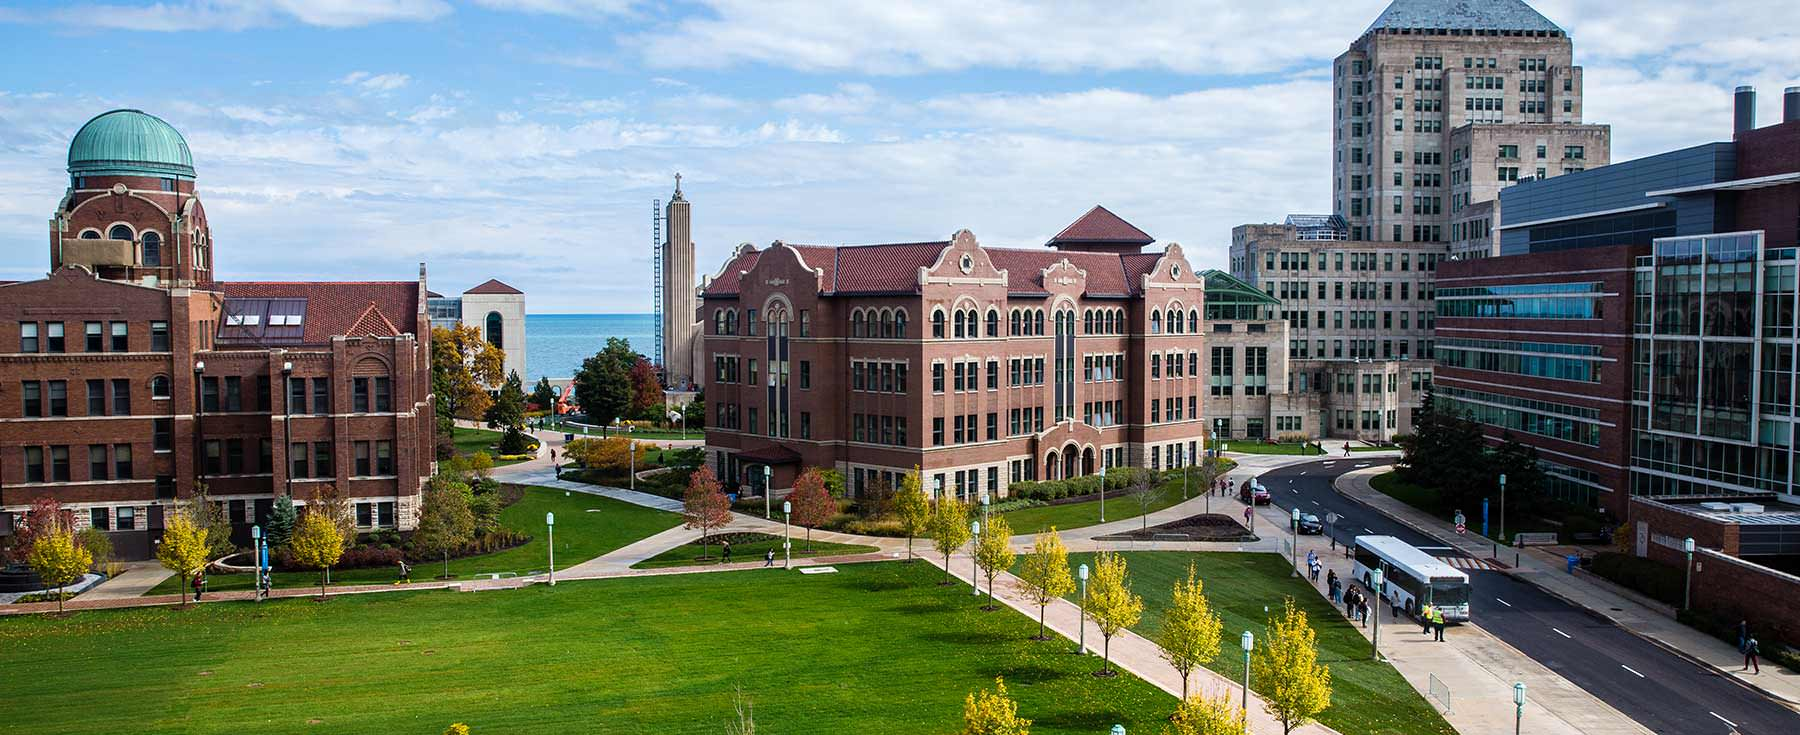 The psychology building at Loyola University Chicago